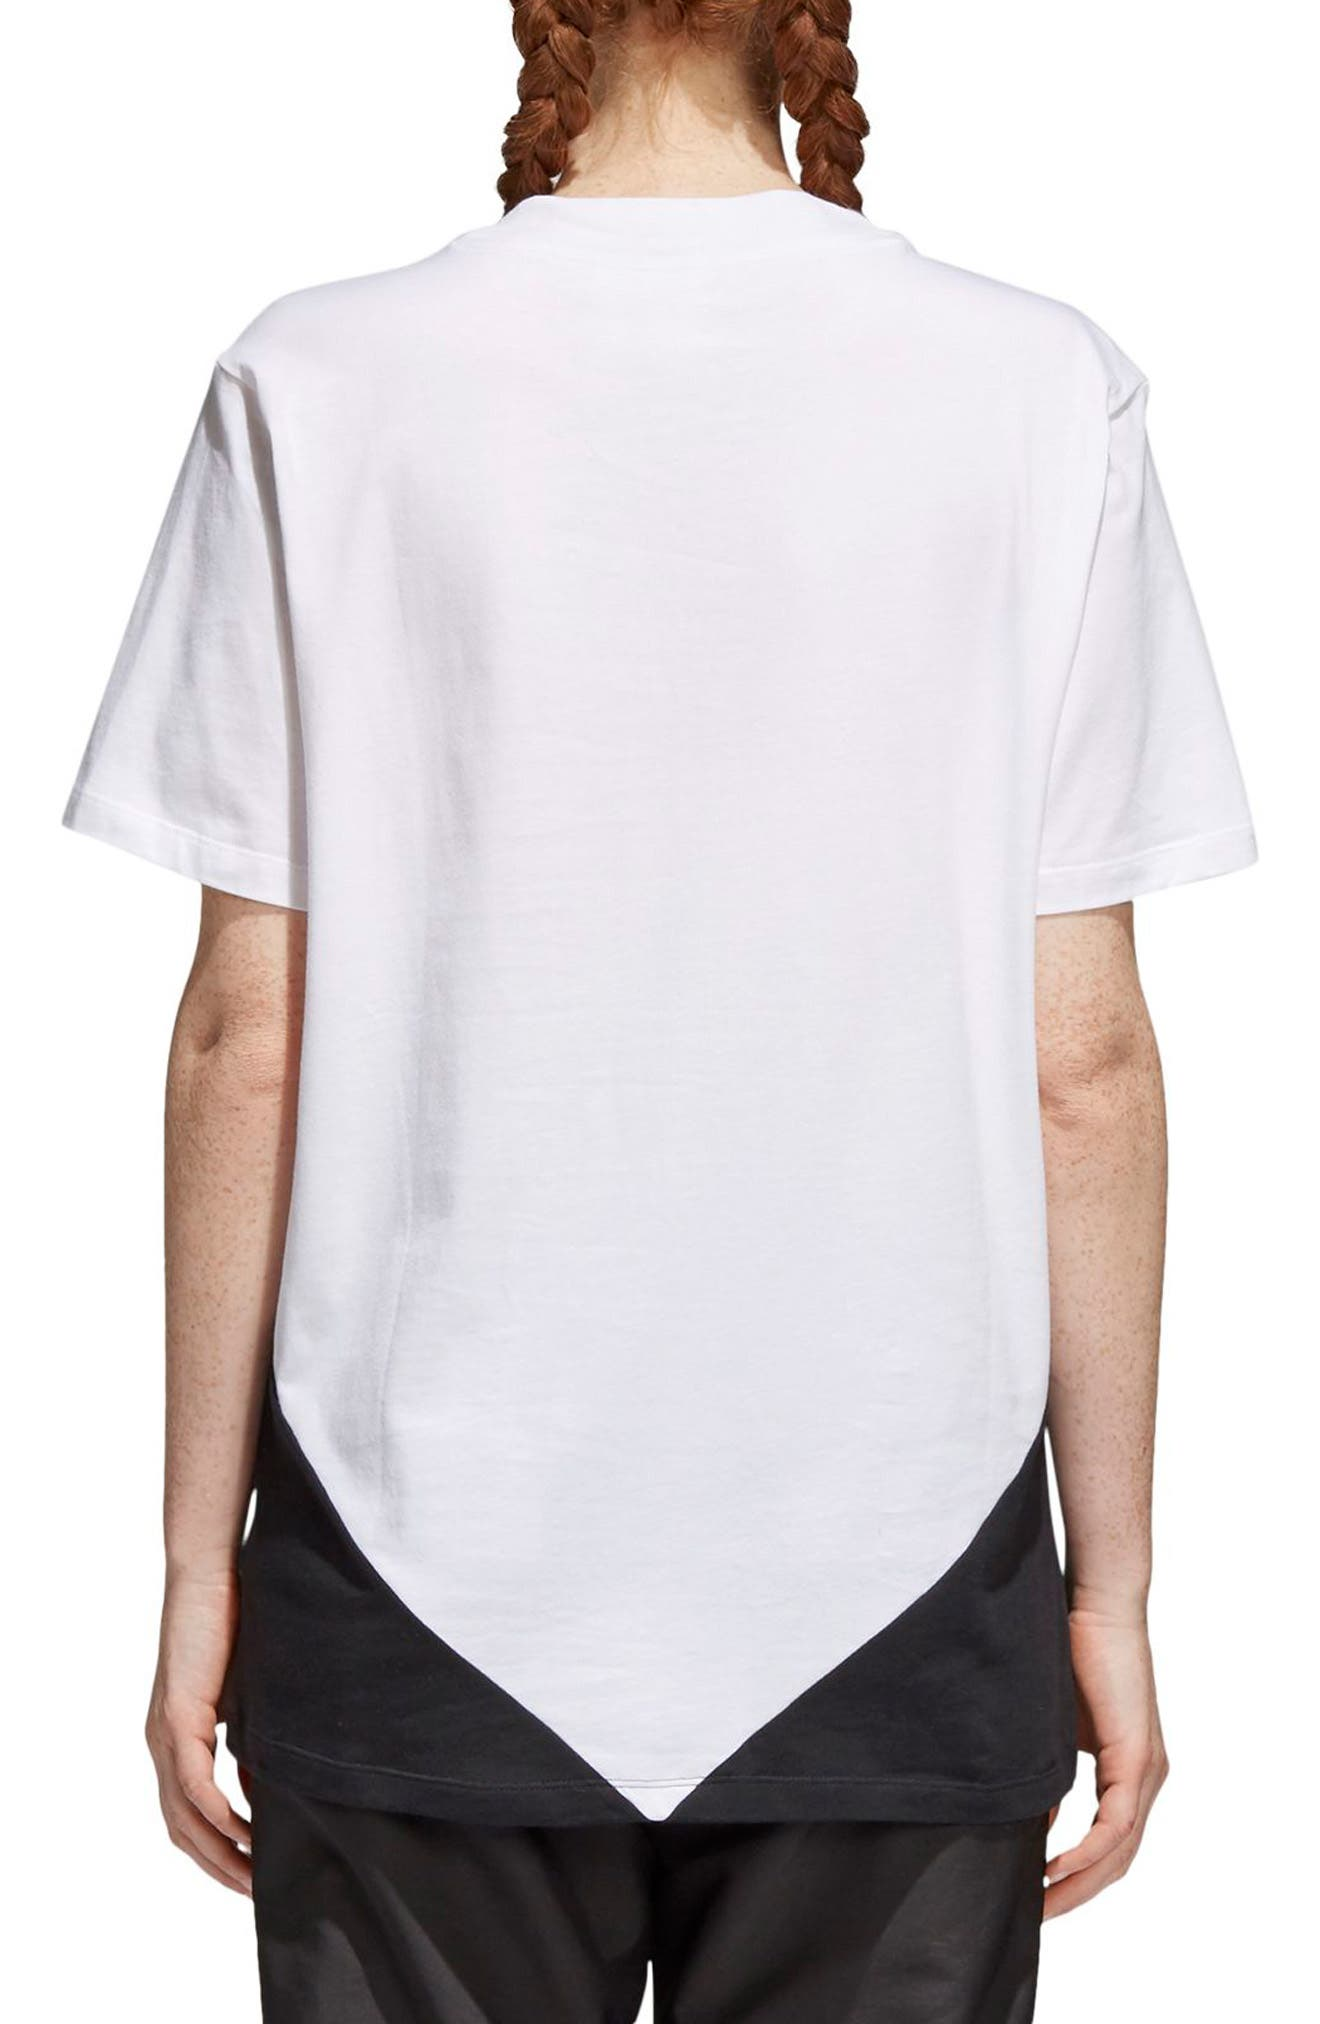 Originals CLRDO Tee,                             Alternate thumbnail 2, color,                             White/ Black